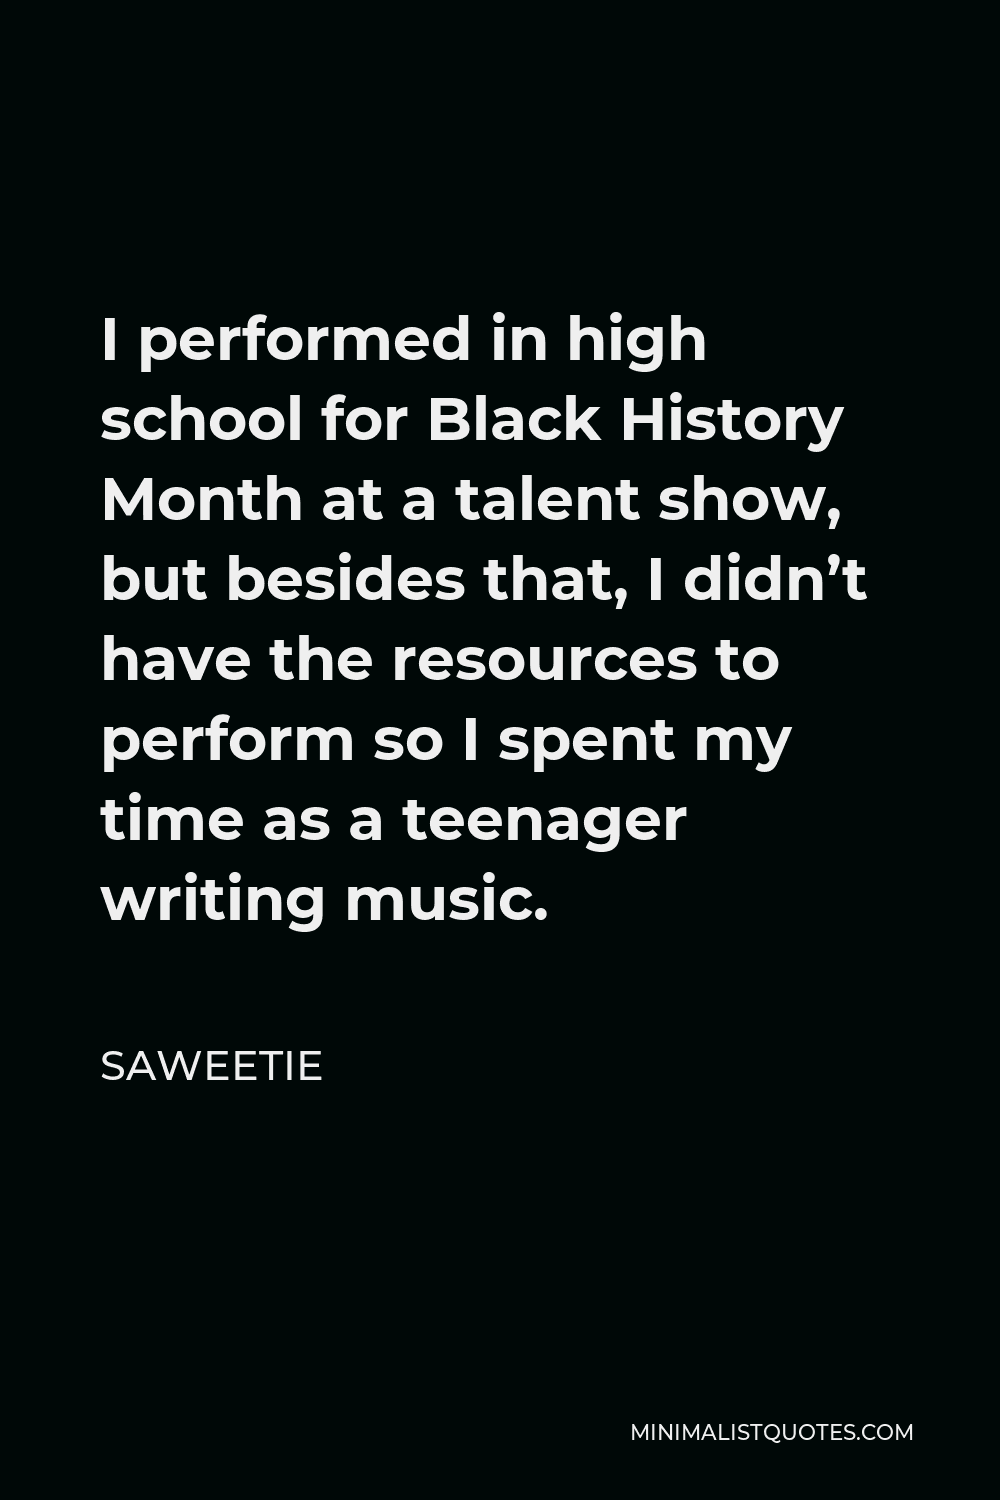 Saweetie Quote - I performed in high school for Black History Month at a talent show, but besides that, I didn't have the resources to perform so I spent my time as a teenager writing music.